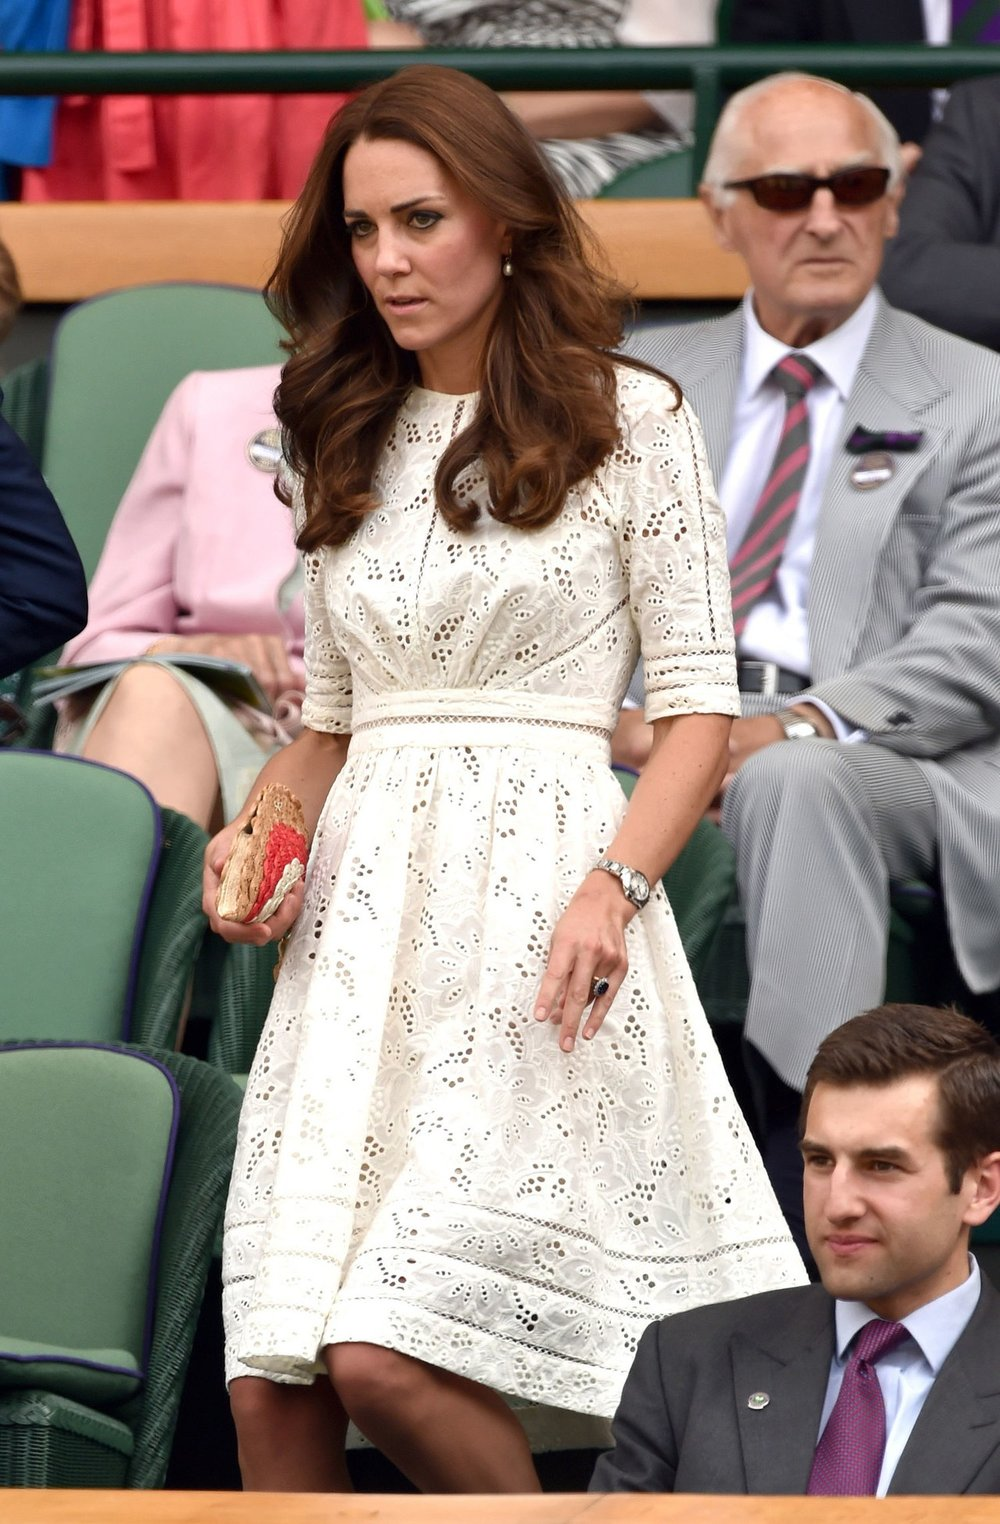 fashion-2014-07-kate-middleton-white-zimmermann-dress-wimbledon-2014-main.jpg